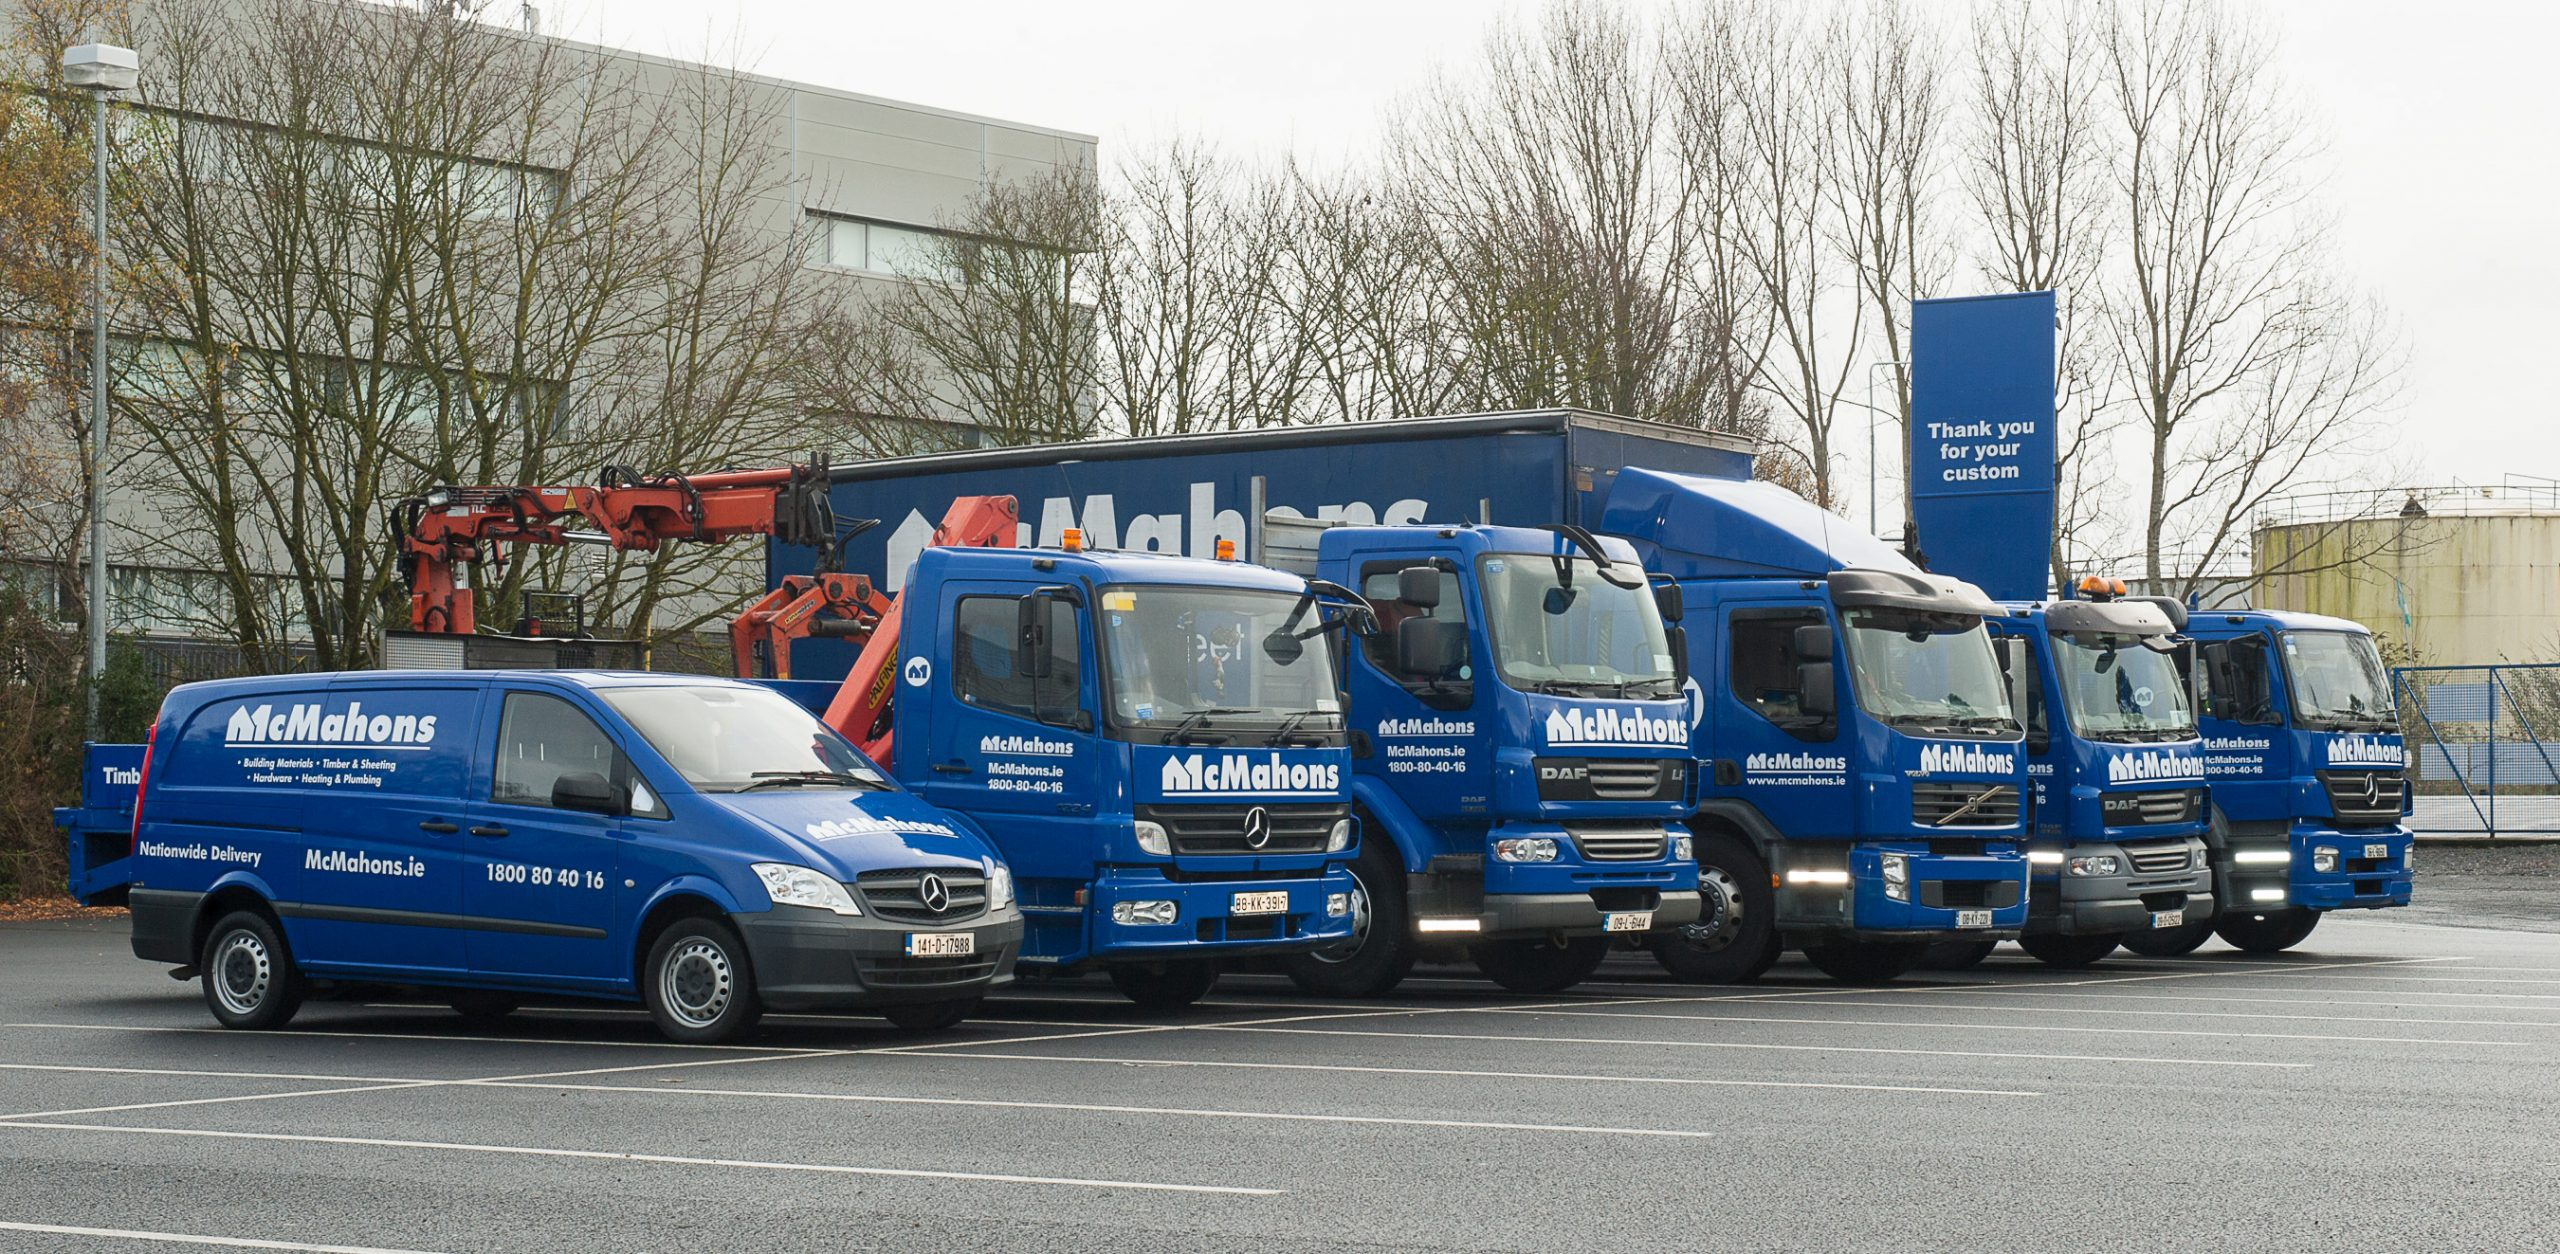 McMahons Builders Providers Deliver Exceptional Customer Experiences for Another 190 Years